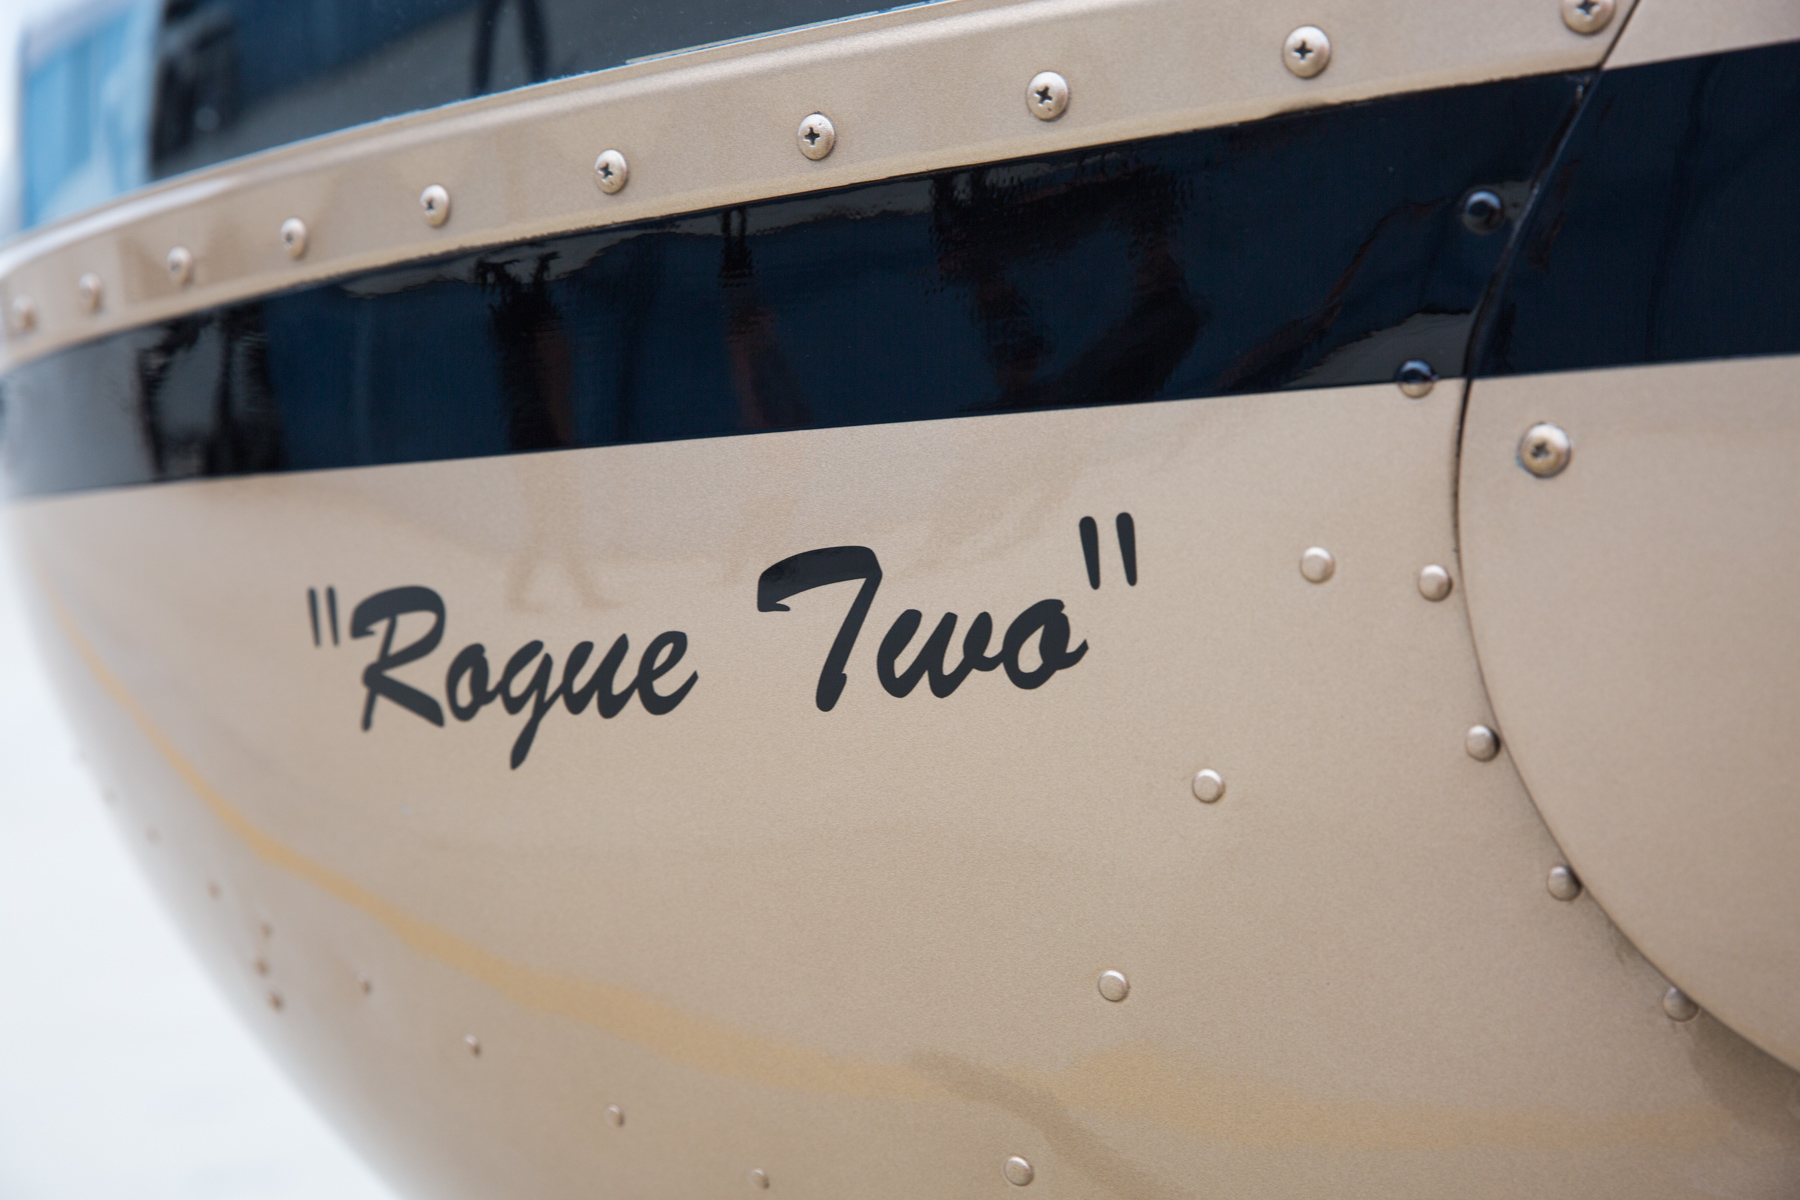 Rogue Two, aka Miss Moneypenny - ◾️R22 Beta.◾️Seats two.◾️Received 2nd overhaul in 2015 with 4500 hours of flight time logged.◾️Lycoming O-320-B2C piston engine.◾️Maximum Gross Weight: 1370 lb.◾️Great for training.